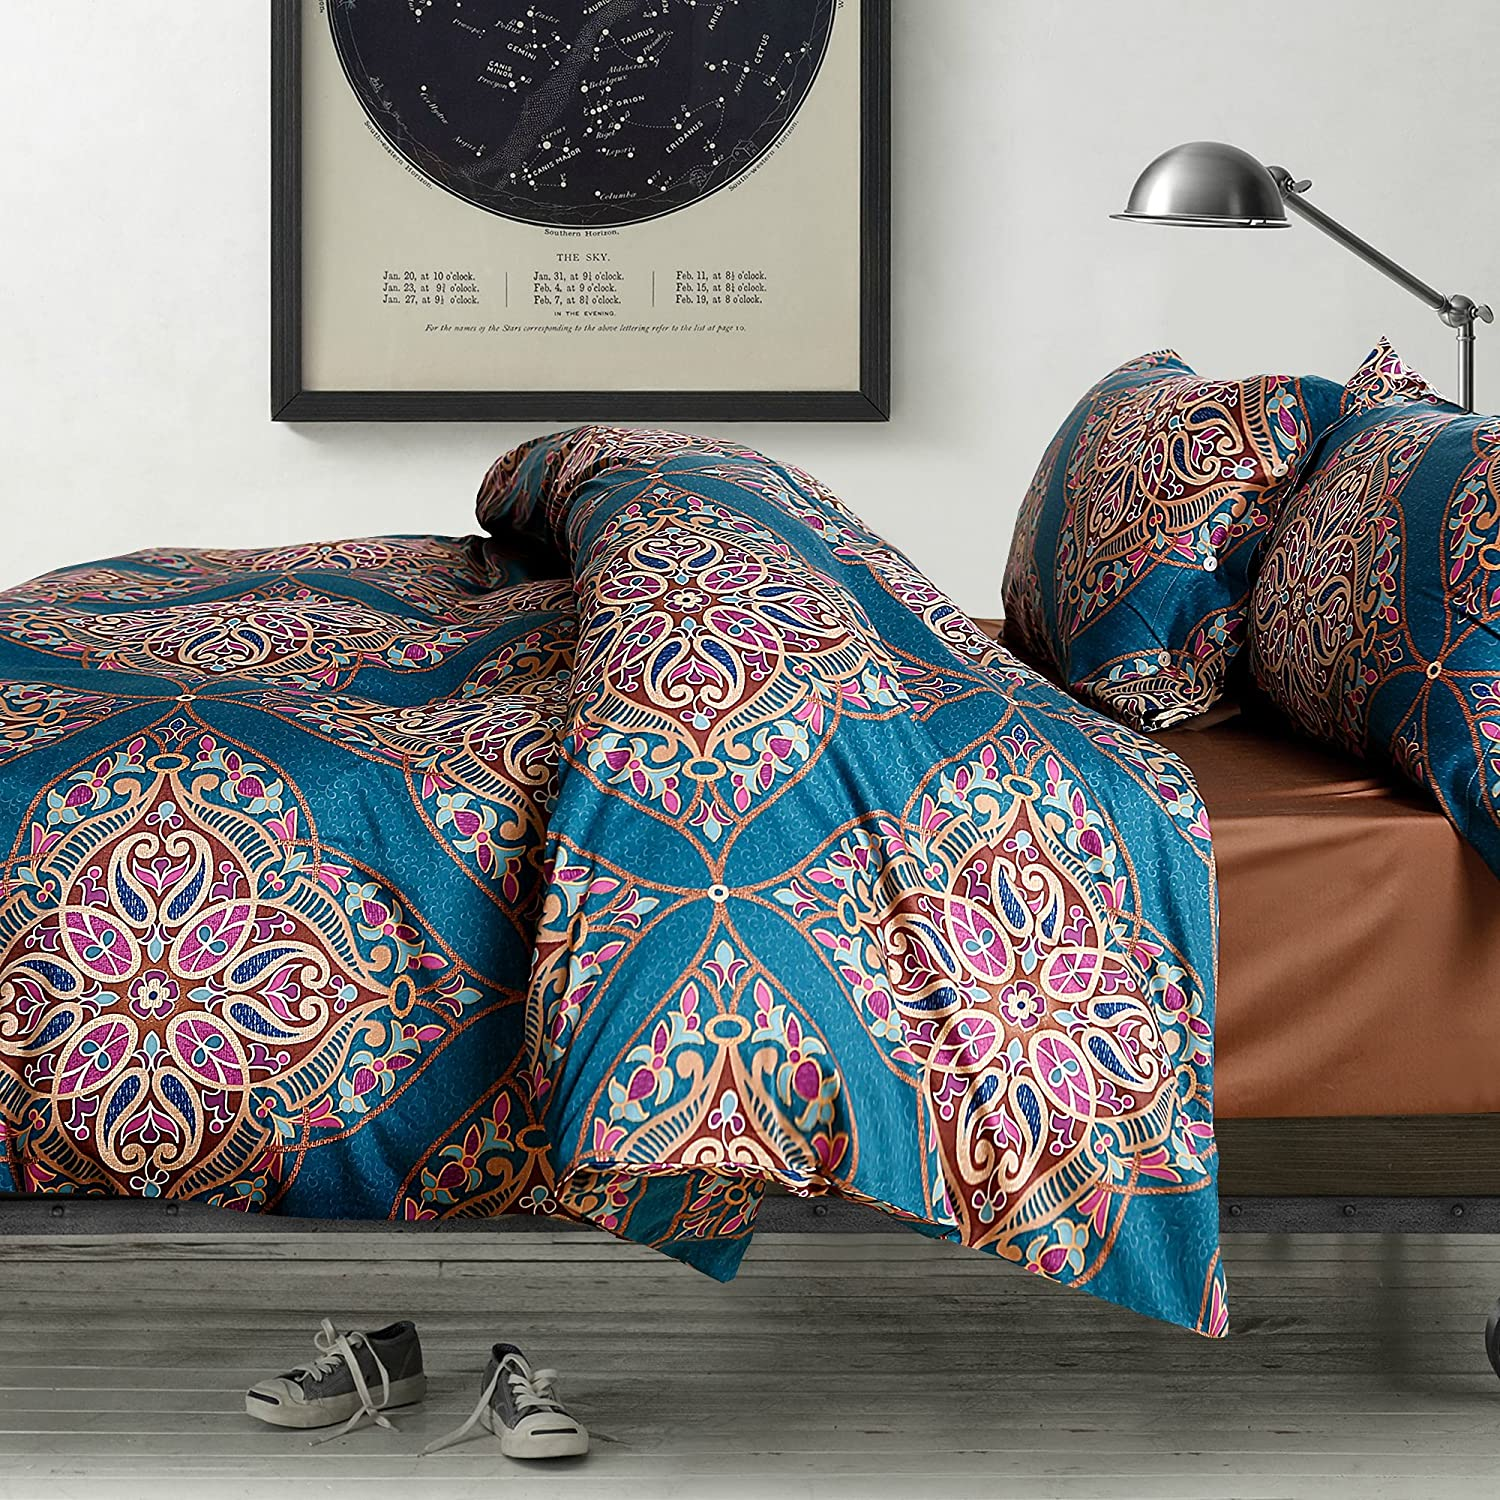 Damask Medallion Luxury Duvet Quilt Cover Boho Paisley Print Bedding Set